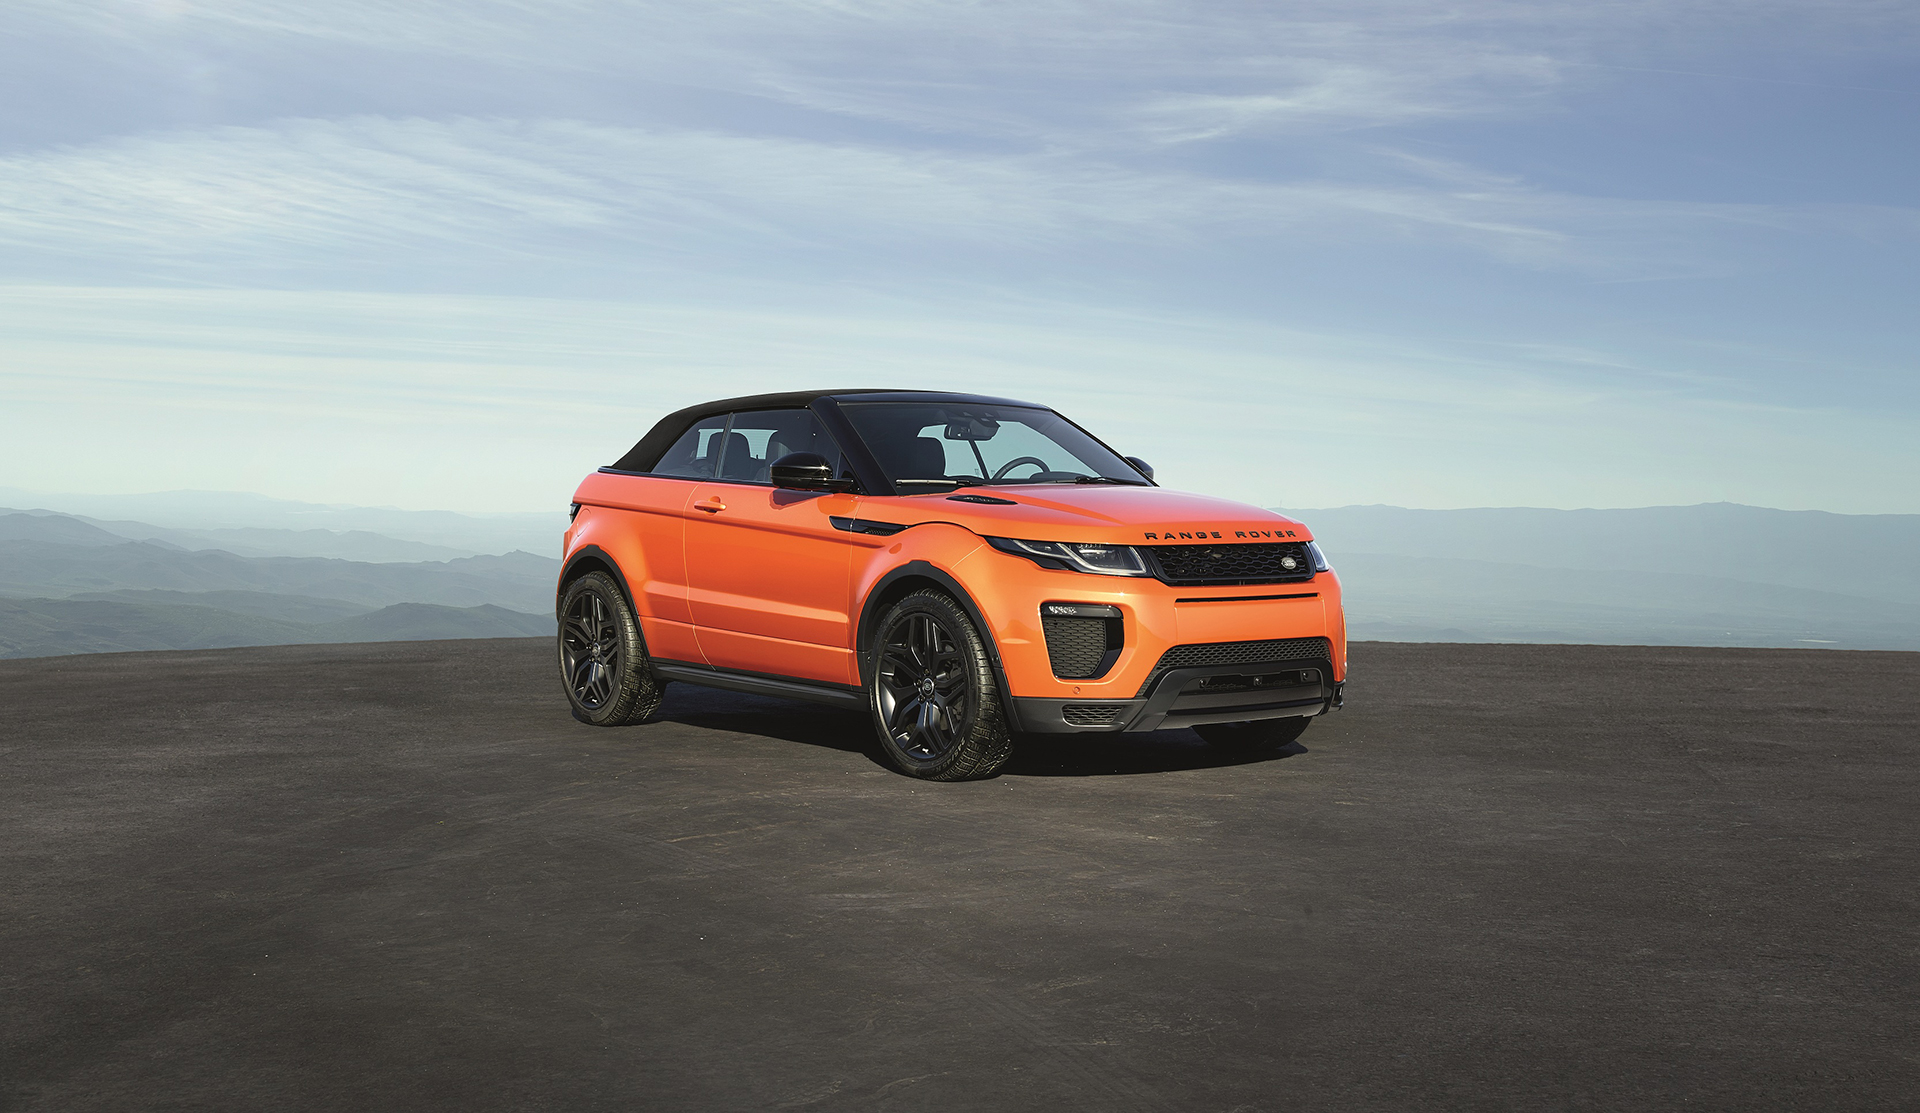 Land Rover Range Rover Evoque Convertible - profil avant / front side-face - close top / toit fermé